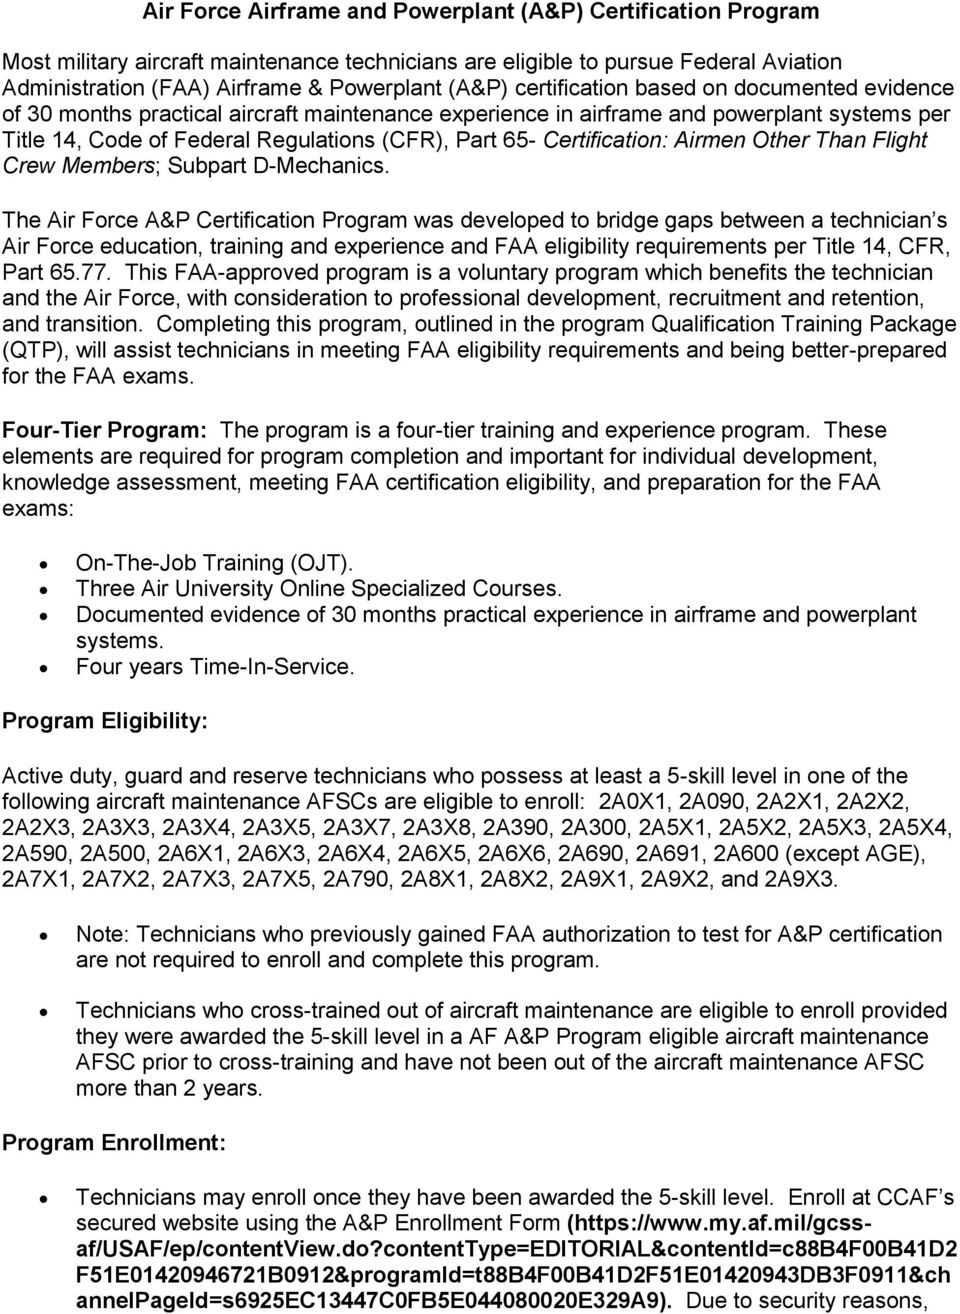 Air Force Airframe and Powerplant (A&P) Certification